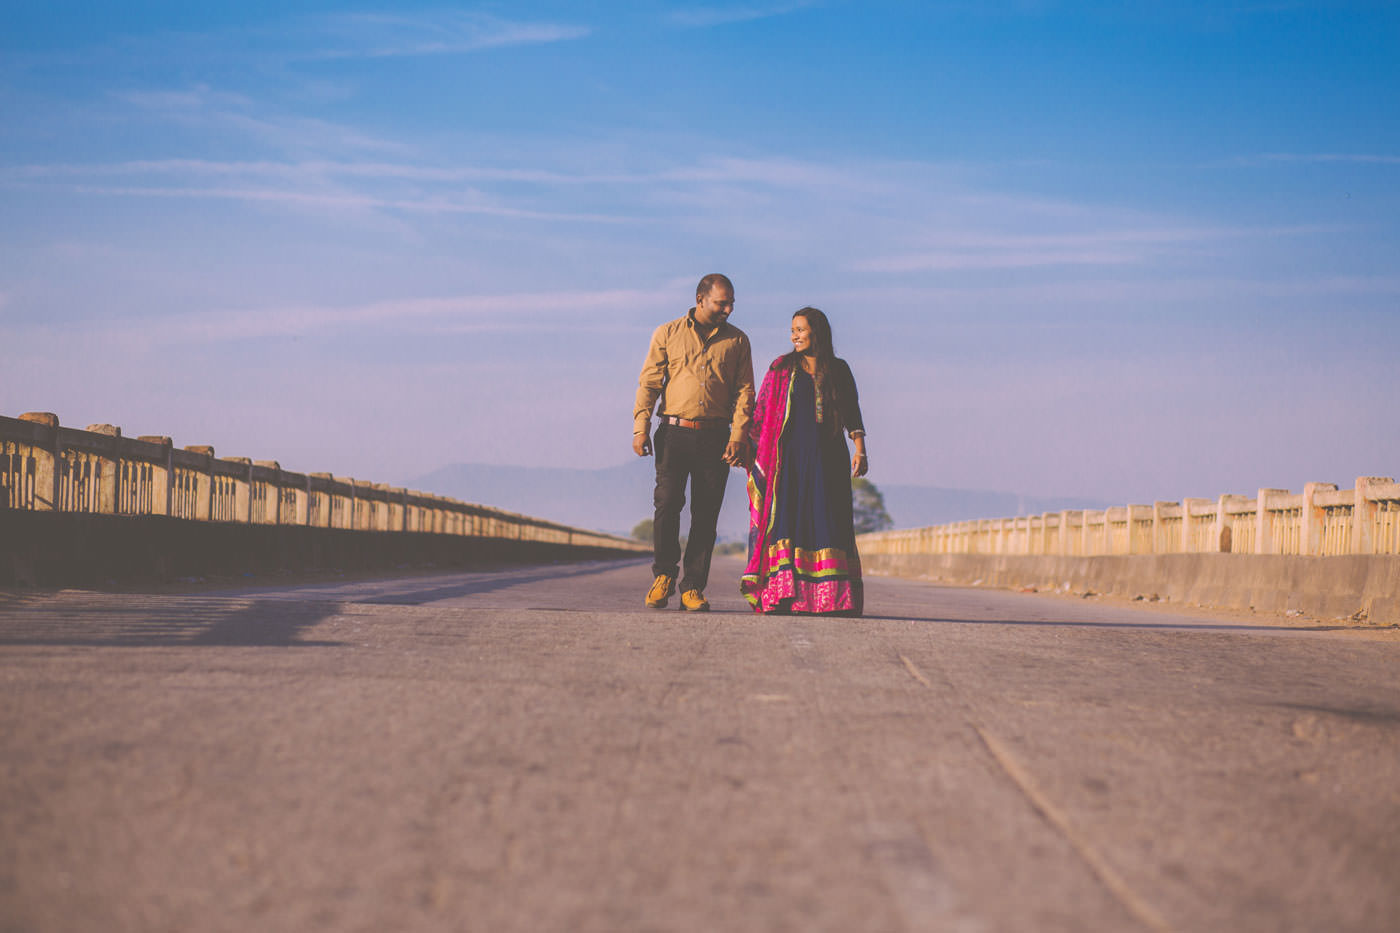 pre wedding couple session shot on a bridge